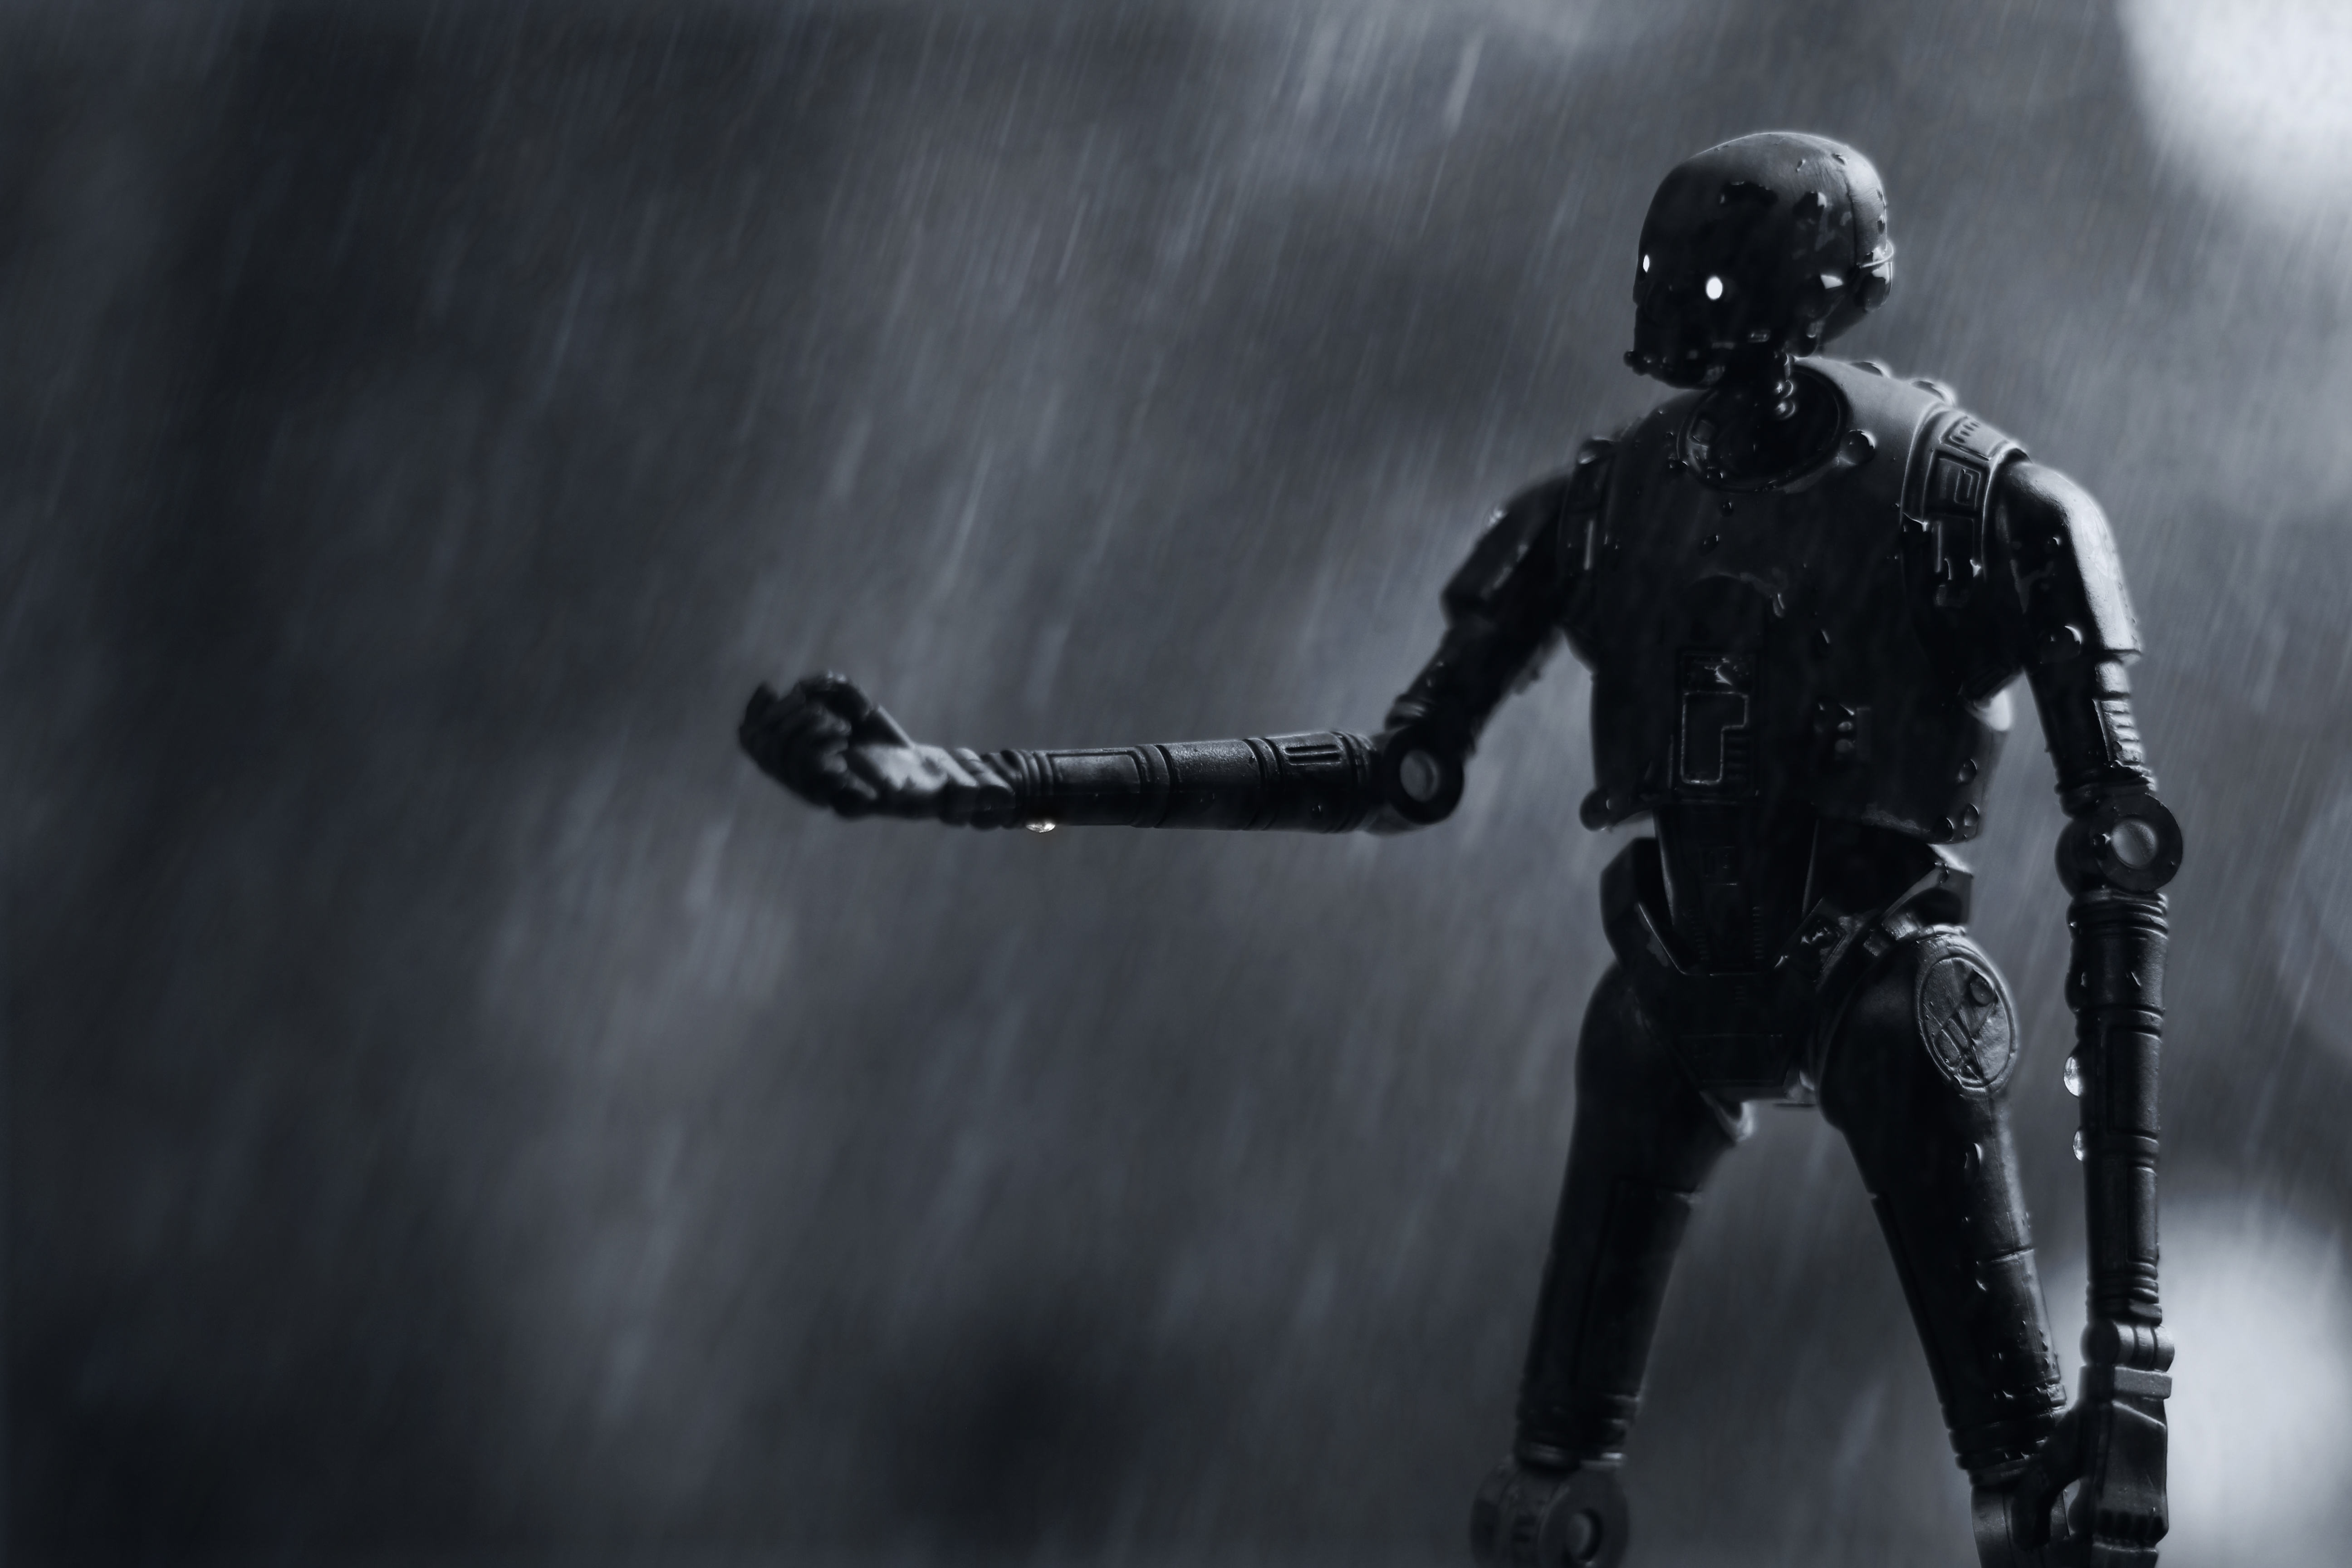 star wars k2so black series